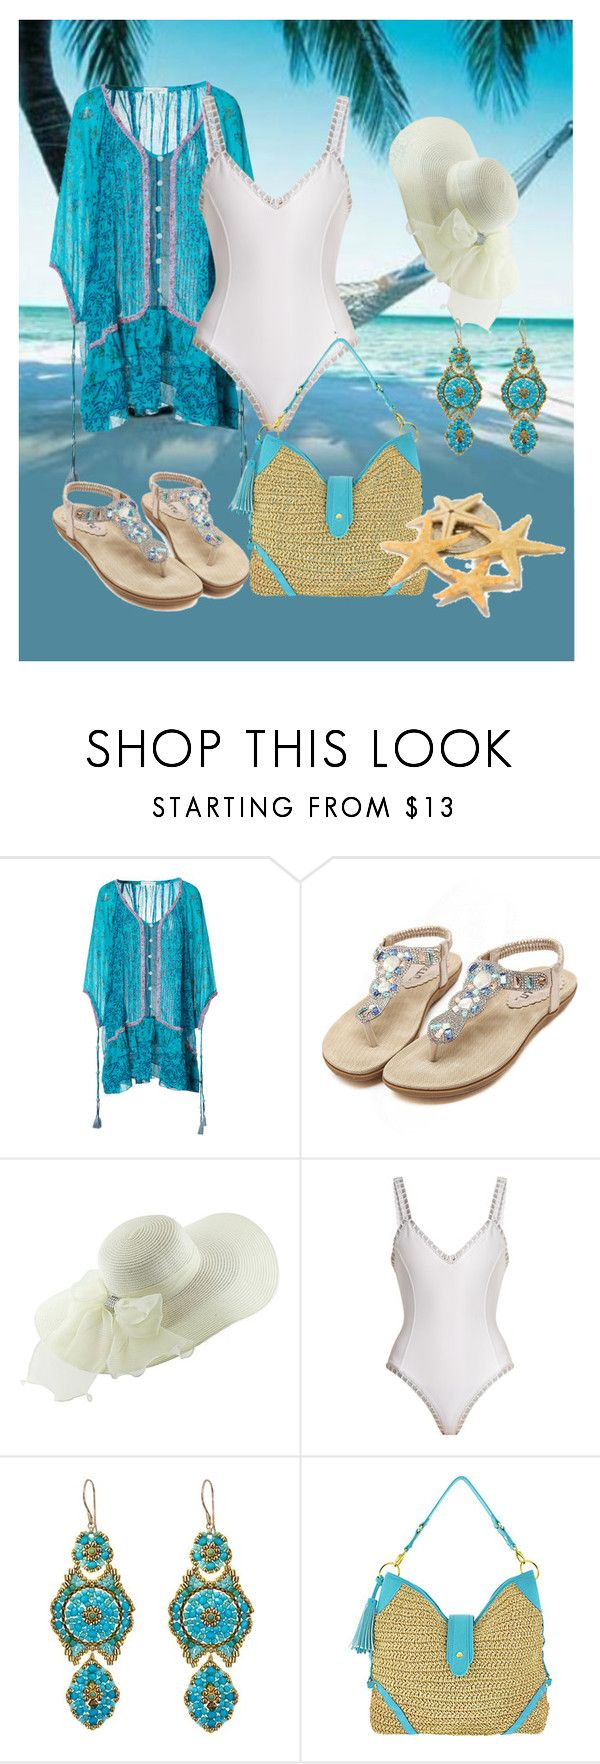 """""""Beach"""" by mozzy18 ❤ liked on Polyvore featuring Poupette St Barth, kiini, Miguel Ases and C.R.A.F.T."""